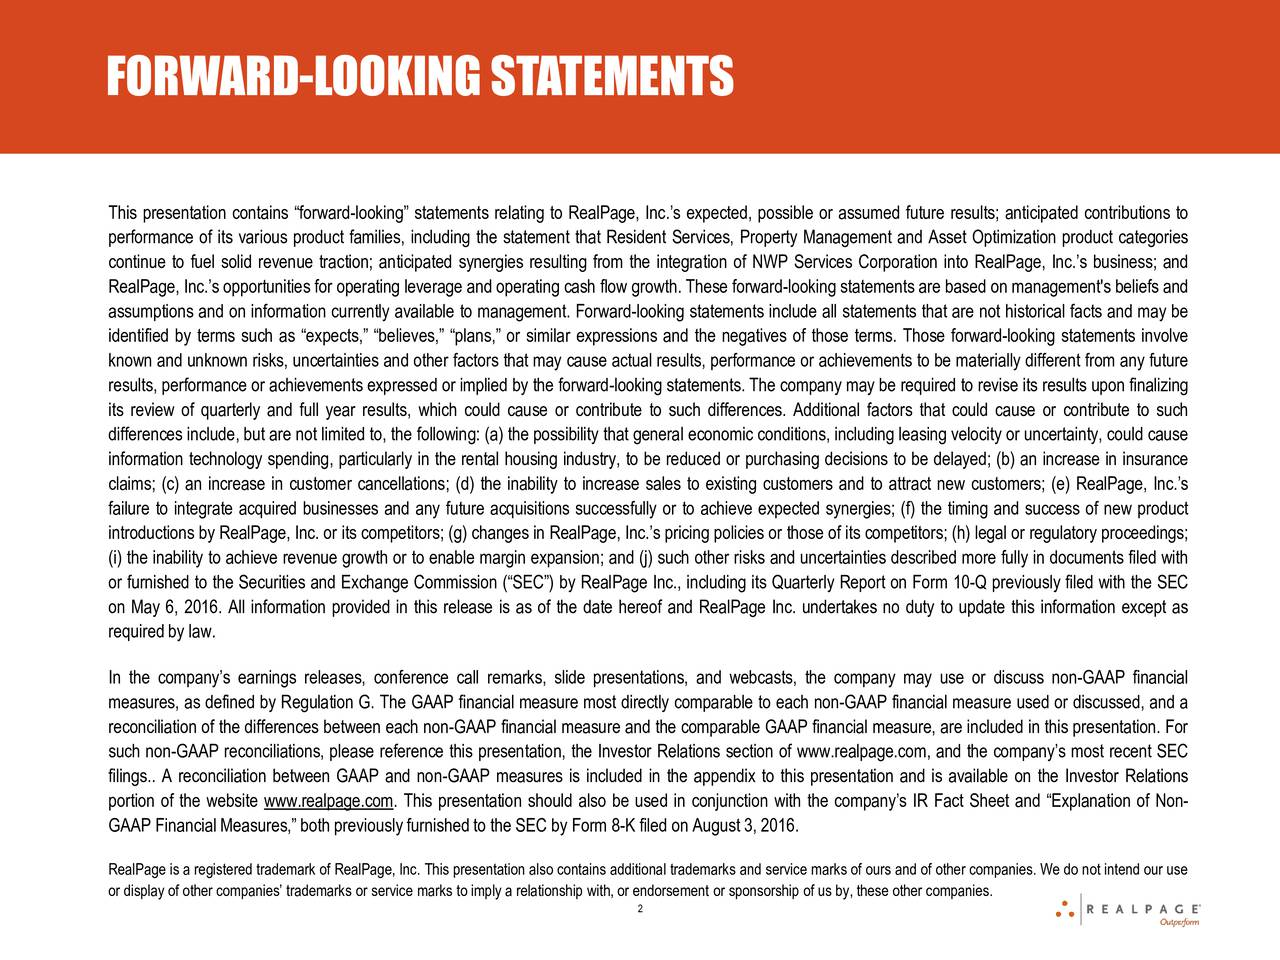 This presentation contains forward-looking statements relating to RealPage, Inc.s expected, possible or assumed future results; anticipated contributions to performance of its various product families, including the statement that Resident Services, Property Management and Asset Optimization product categories continue to fuel solid revenue traction; anticipated synergies resulting from the integration of NWP Services Corporation into RealPage, Inc.s business; and RealPage, Inc.s opportunities for operating leverage and operating cash flow growth. These forward-looking statements are based on management's beliefs and assumptions and on information currently available to management. Forward-looking statements include all statements that are not historical facts and may be identified by terms such as expects, believes, plans, or similar expressions and the negatives of those terms. Those forward-looking statements involve known and unknown risks, uncertainties and other factors that may cause actual results, performance or achievements to be materially different from any future results, performance or achievements expressed or implied by the forward-looking statements. The company may be required to revise its results upon finalizing its review of quarterly and full year results, which could cause or contribute to such differences. Additional factors that could cause or contribute to such differences include, but are not limited to, the following: (a) the possibility that general economic conditions, including leasing velocity or uncertainty, could cause information technology spending, particularly in the rental housing industry, to be reduced or purchasing decisions to be delayed; (b) an increase in insurance claims; (c) an increase in customer cancellations; (d) the inability to increase sales to existing customers and to attract new customers; (e) RealPage, Inc.s failure to integrate acquired businesses and any future acquisitions successfully or to achieve expected synergies; (f) the timing and success of new product introductions by RealPage, Inc. or its competitors; (g) changes in RealPage, Inc.s pricing policies or those of its competitors; (h) legal or regulatory proceedings; (i) the inability to achieve revenue growth or to enable margin expansion; and (j) such other risks and uncertainties described more fully in documents filed with or furnished to the Securities and Exchange Commission (SEC) by RealPage Inc., including its Quarterly Report on Form 10-Q previously filed with the SEC on May 6, 2016. All information provided in this release is as of the date hereof and RealPage Inc. undertakes no duty to update this information except as required by law. In the companys earnings releases, conference call remarks, slide presentations, and webcasts, the company may use or discuss non-GAAP financial measures, as defined by Regulation G. The GAAP financial measure most directly comparable to each non-GAAP financial measure used or discussed, and a reconciliation of the differences between each non-GAAP financial measure and the comparable GAAP financial measure, are included in this presentation. For such non-GAAP reconciliations, please reference this presentation, the Investor Relations section of www.realpage.com, and the companys most recent SEC filings.. A reconciliation between GAAP and non-GAAP measures is included in the appendix to this presentation and is available on the Investor Relations portion of the website www.realpage.com. This presentation should also be used in conjunction with the companys IR Fact Sheet and Explanation of Non- GAAP FinancialMeasures, both previouslyfurnishedto the SEC by Form 8-K filed on August 3, 2016. RealPage is a registered trademark of RealPage, Inc. This presentation also contains additional trademarks and service marks of ours and of other companies. We do not intend our use or display of other companies trademarks or service marks to imply a relat2onship with, or endorsement or sponsorship of us by, these other companies.